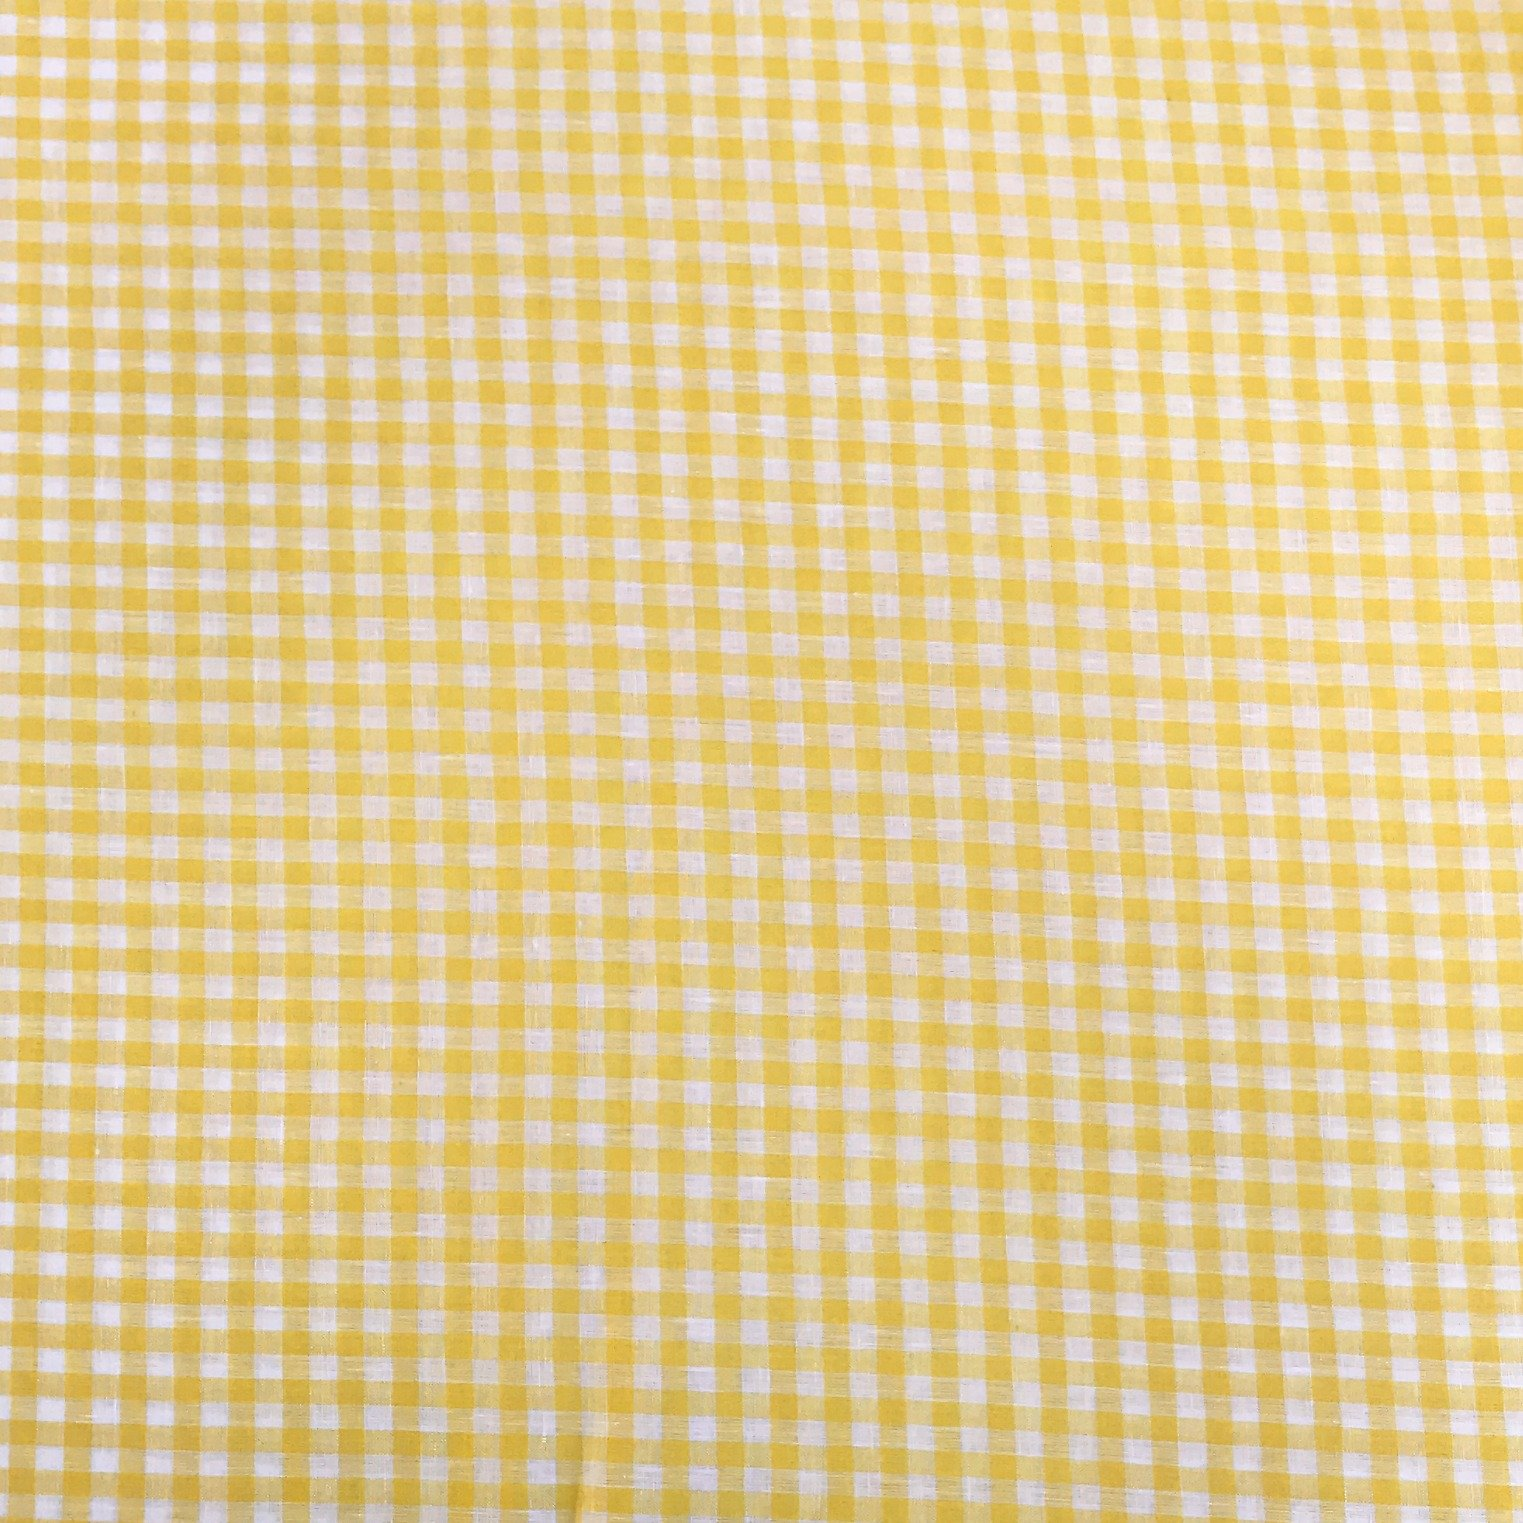 Linen Gingham Check - Lemon